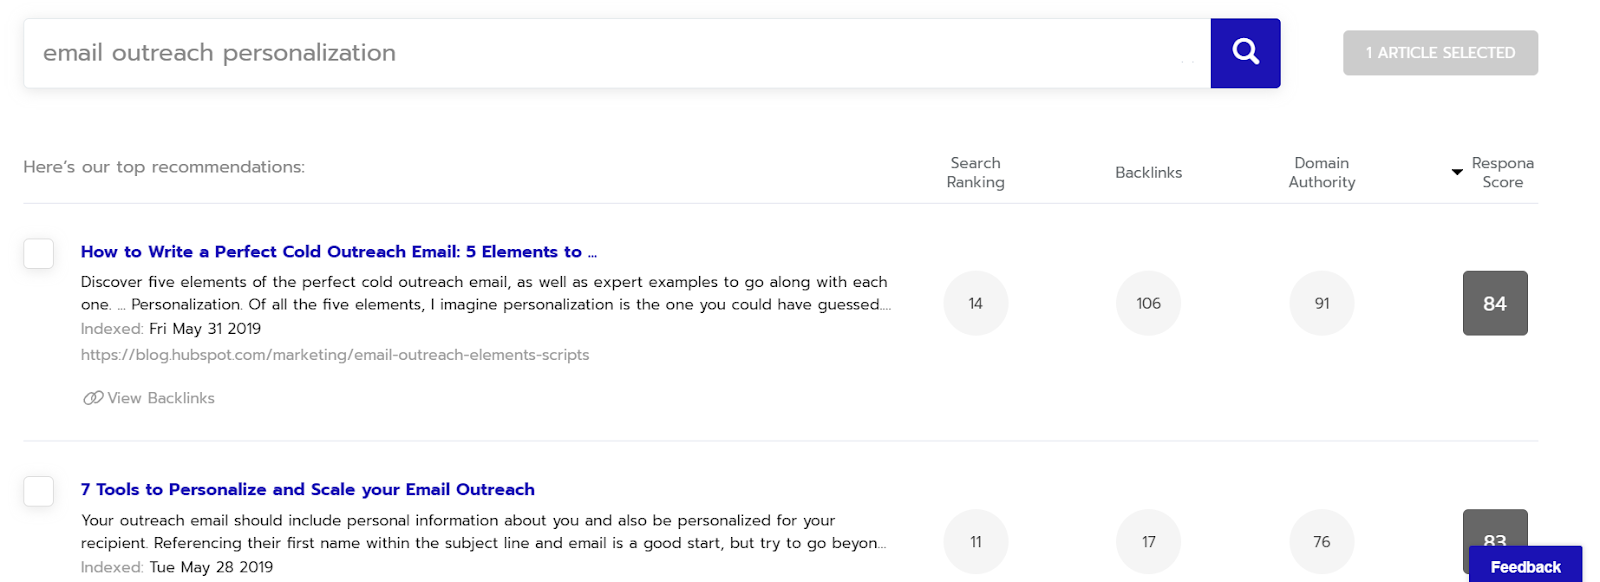 """Searching """"Email Outreach Personalization"""" in Respona content search step."""